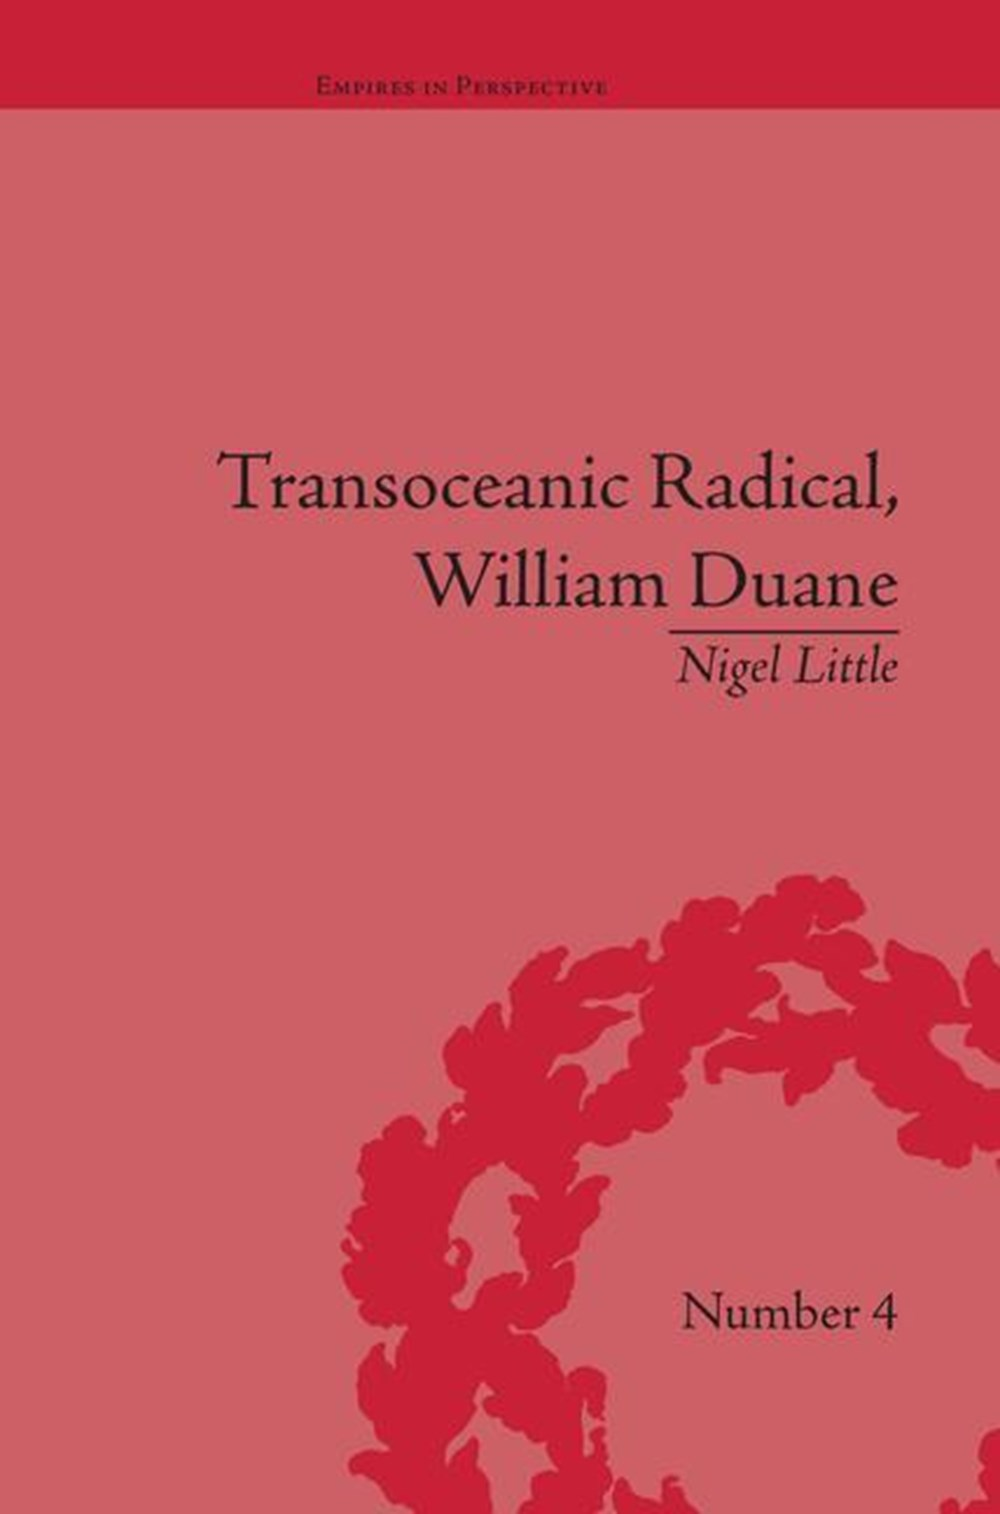 Transoceanic Radical William Duane: National Identity and Empire, 1760-1835